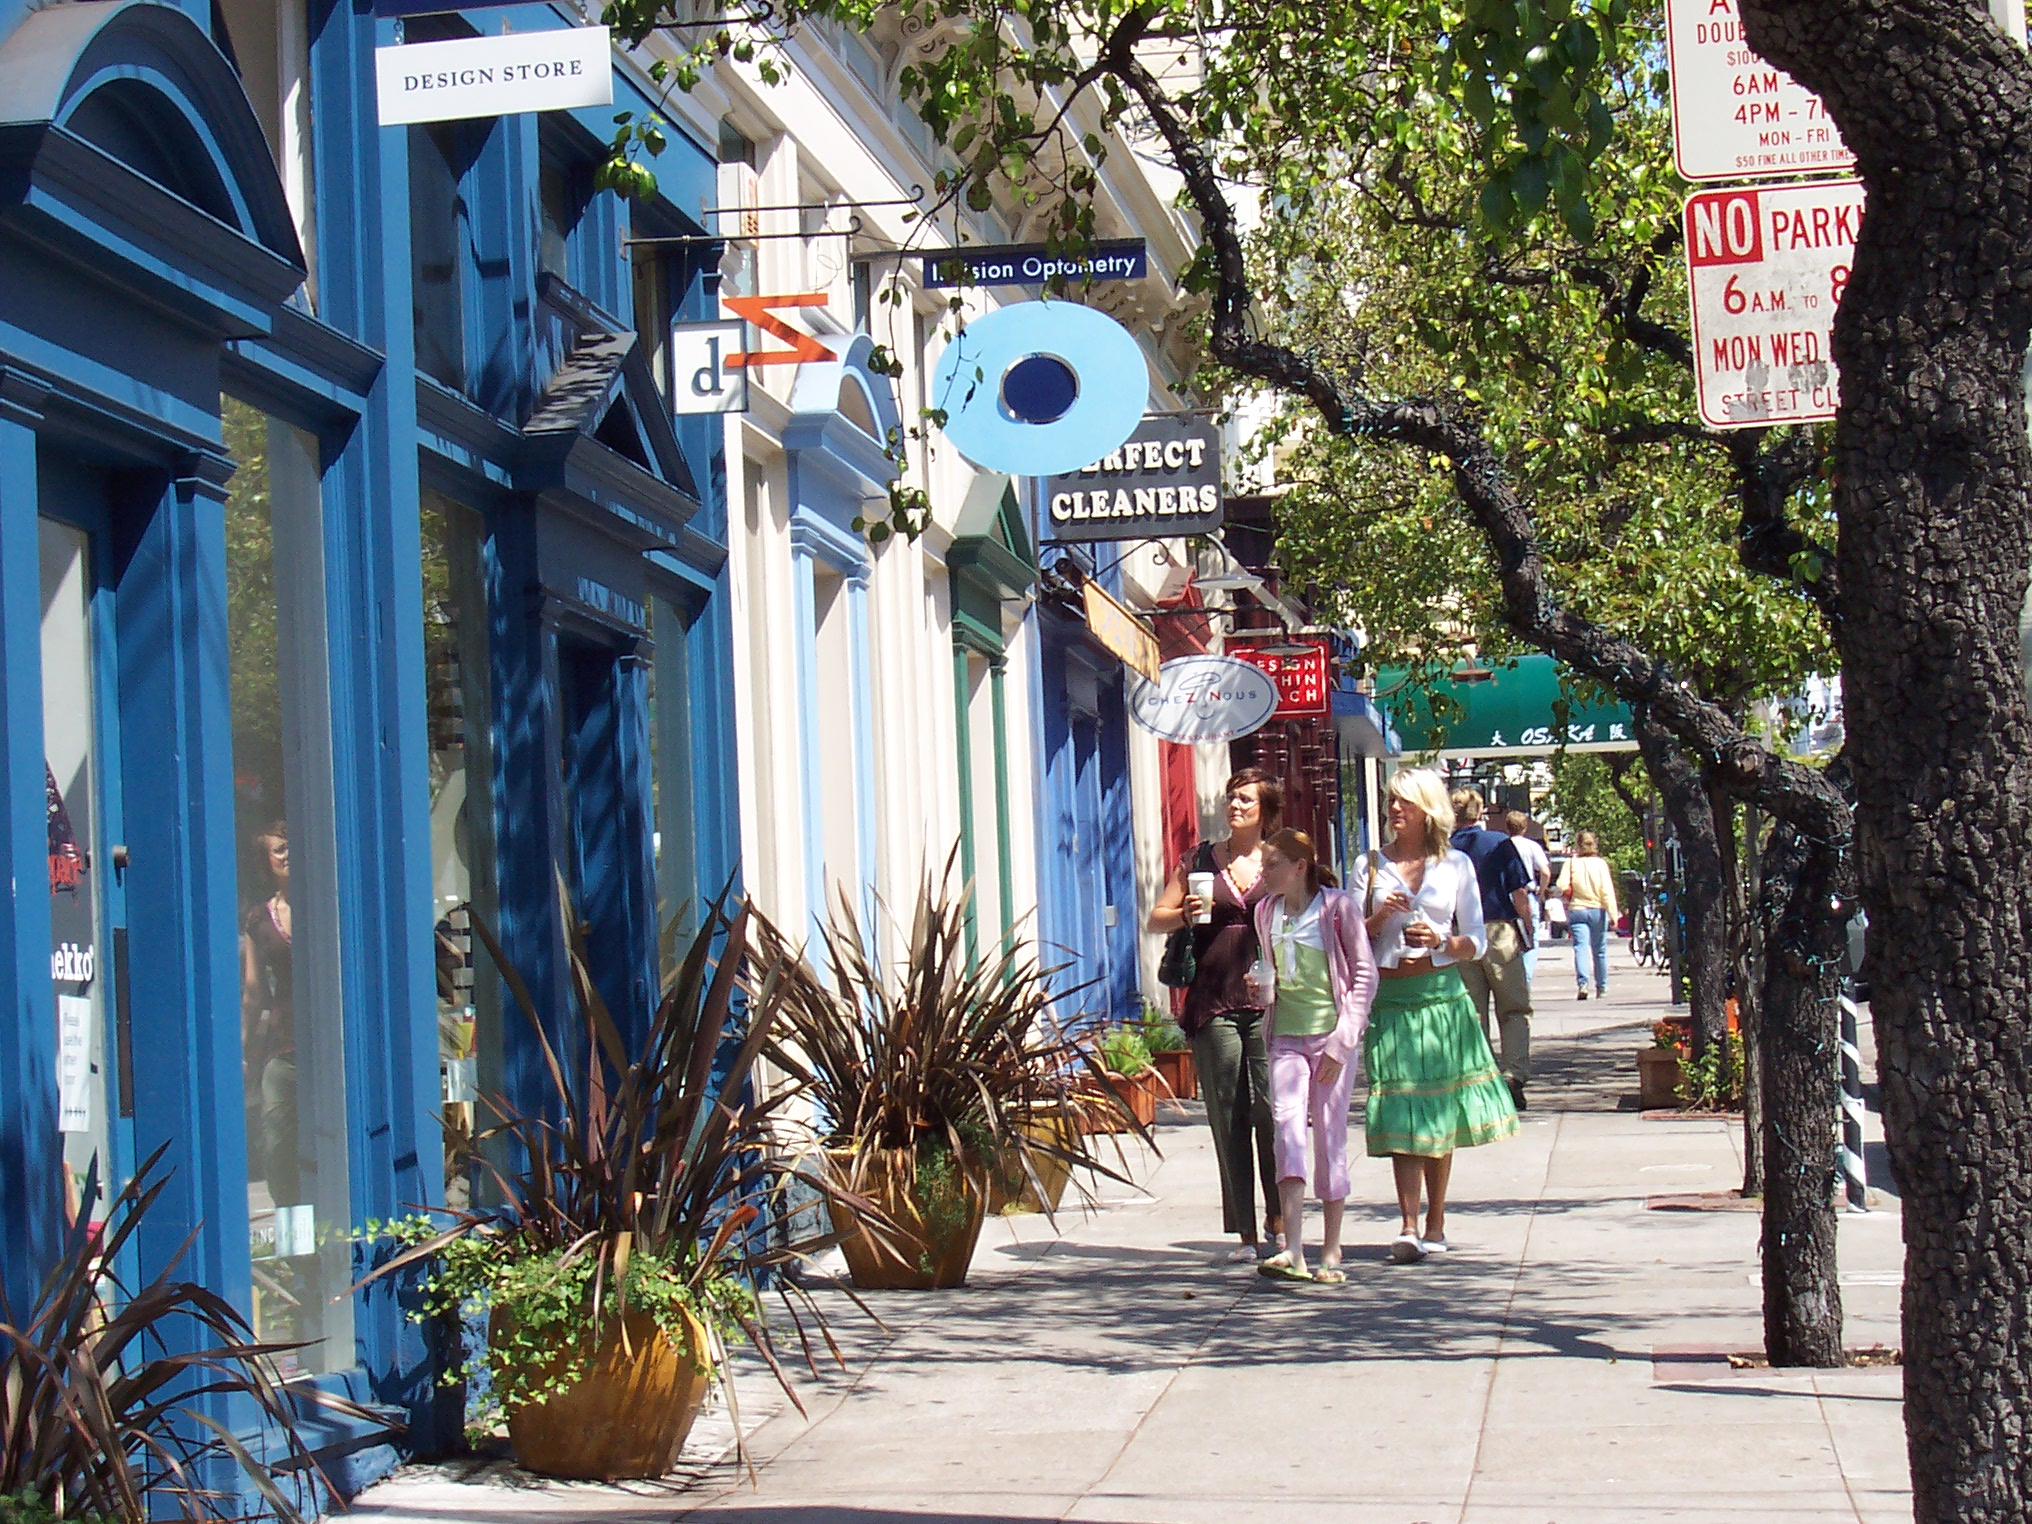 Fillmore Street is a trendy place to grab coffee, dine with friends or pick up some upscale designer duds.